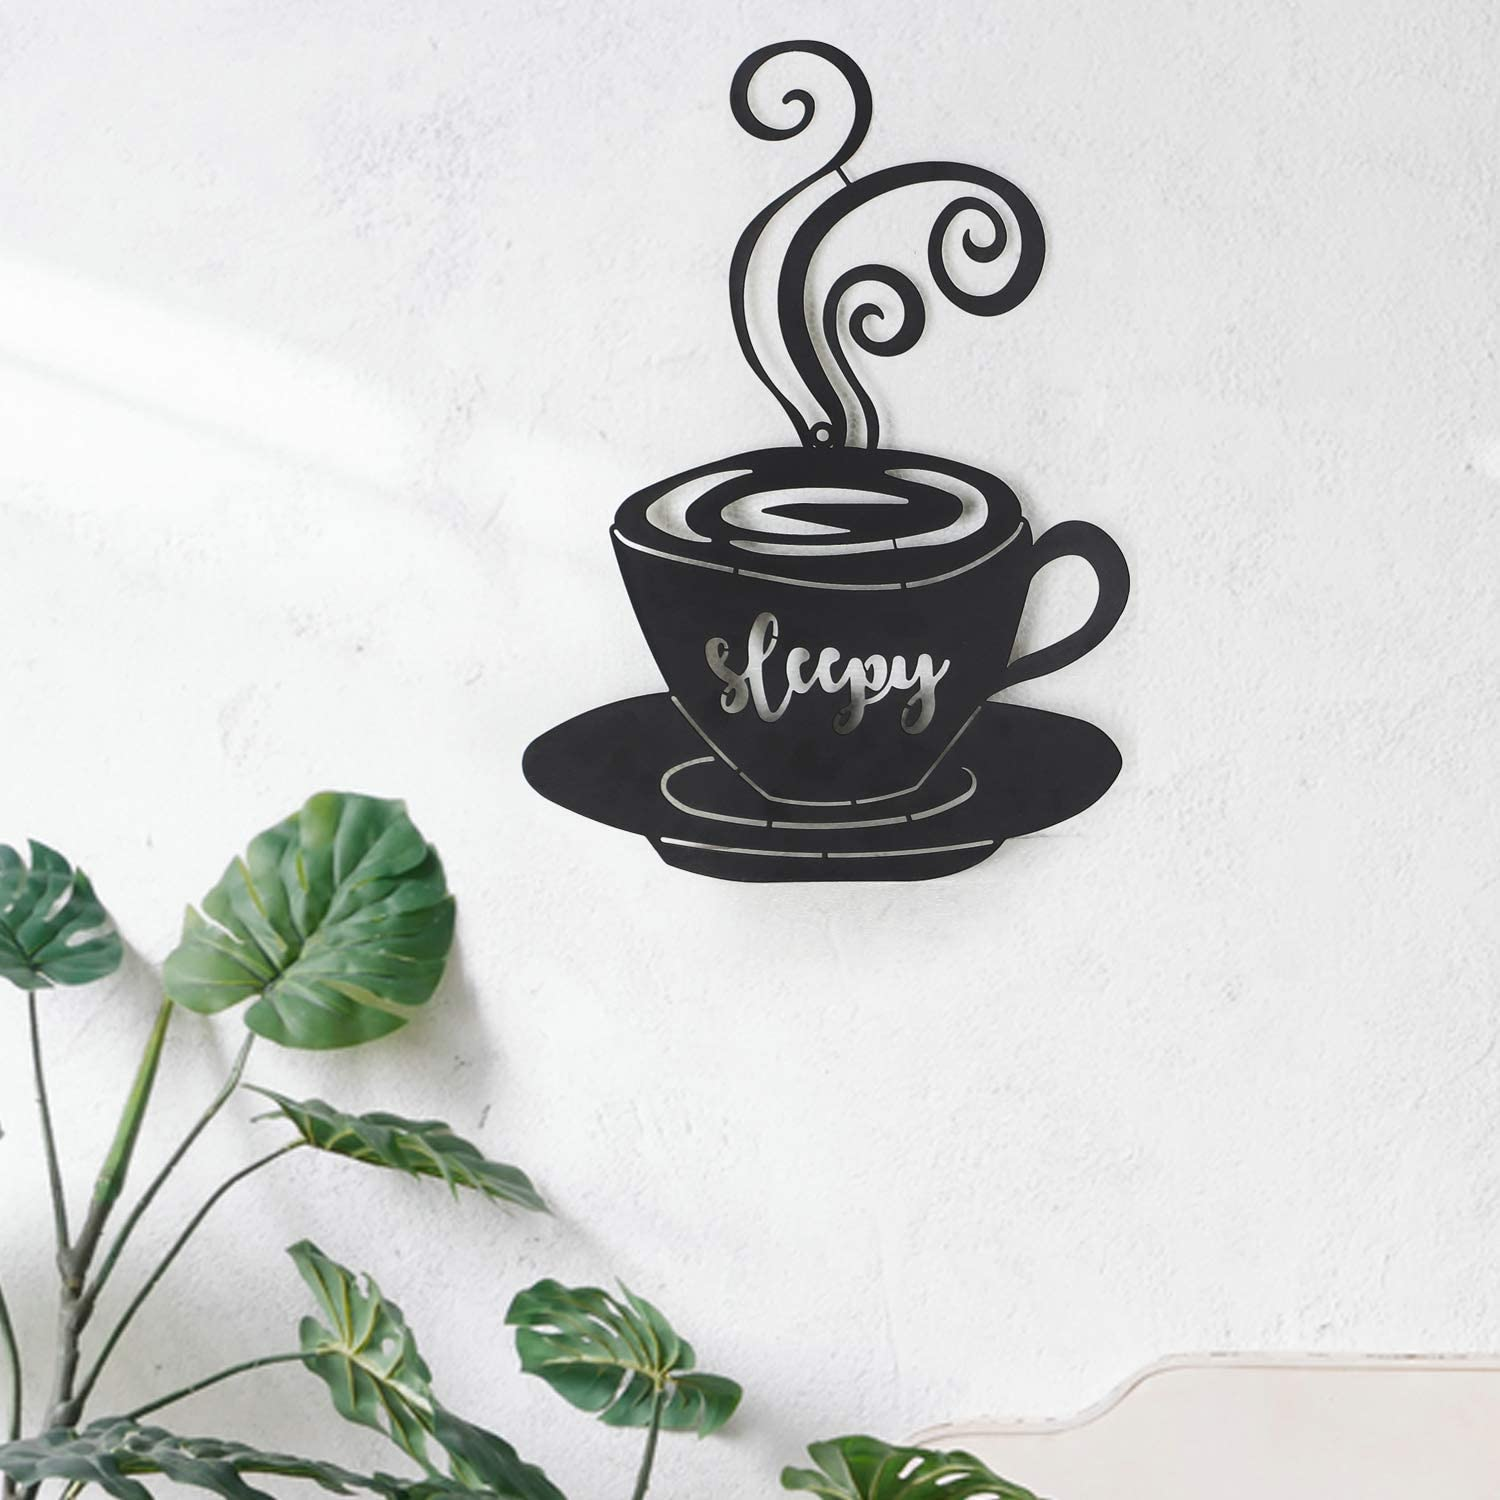 Adeco Decorative Iron Wall Hanging Accents Three Stacked Coffee Tea Cups Decor Widget 23.7x12.2 Inches